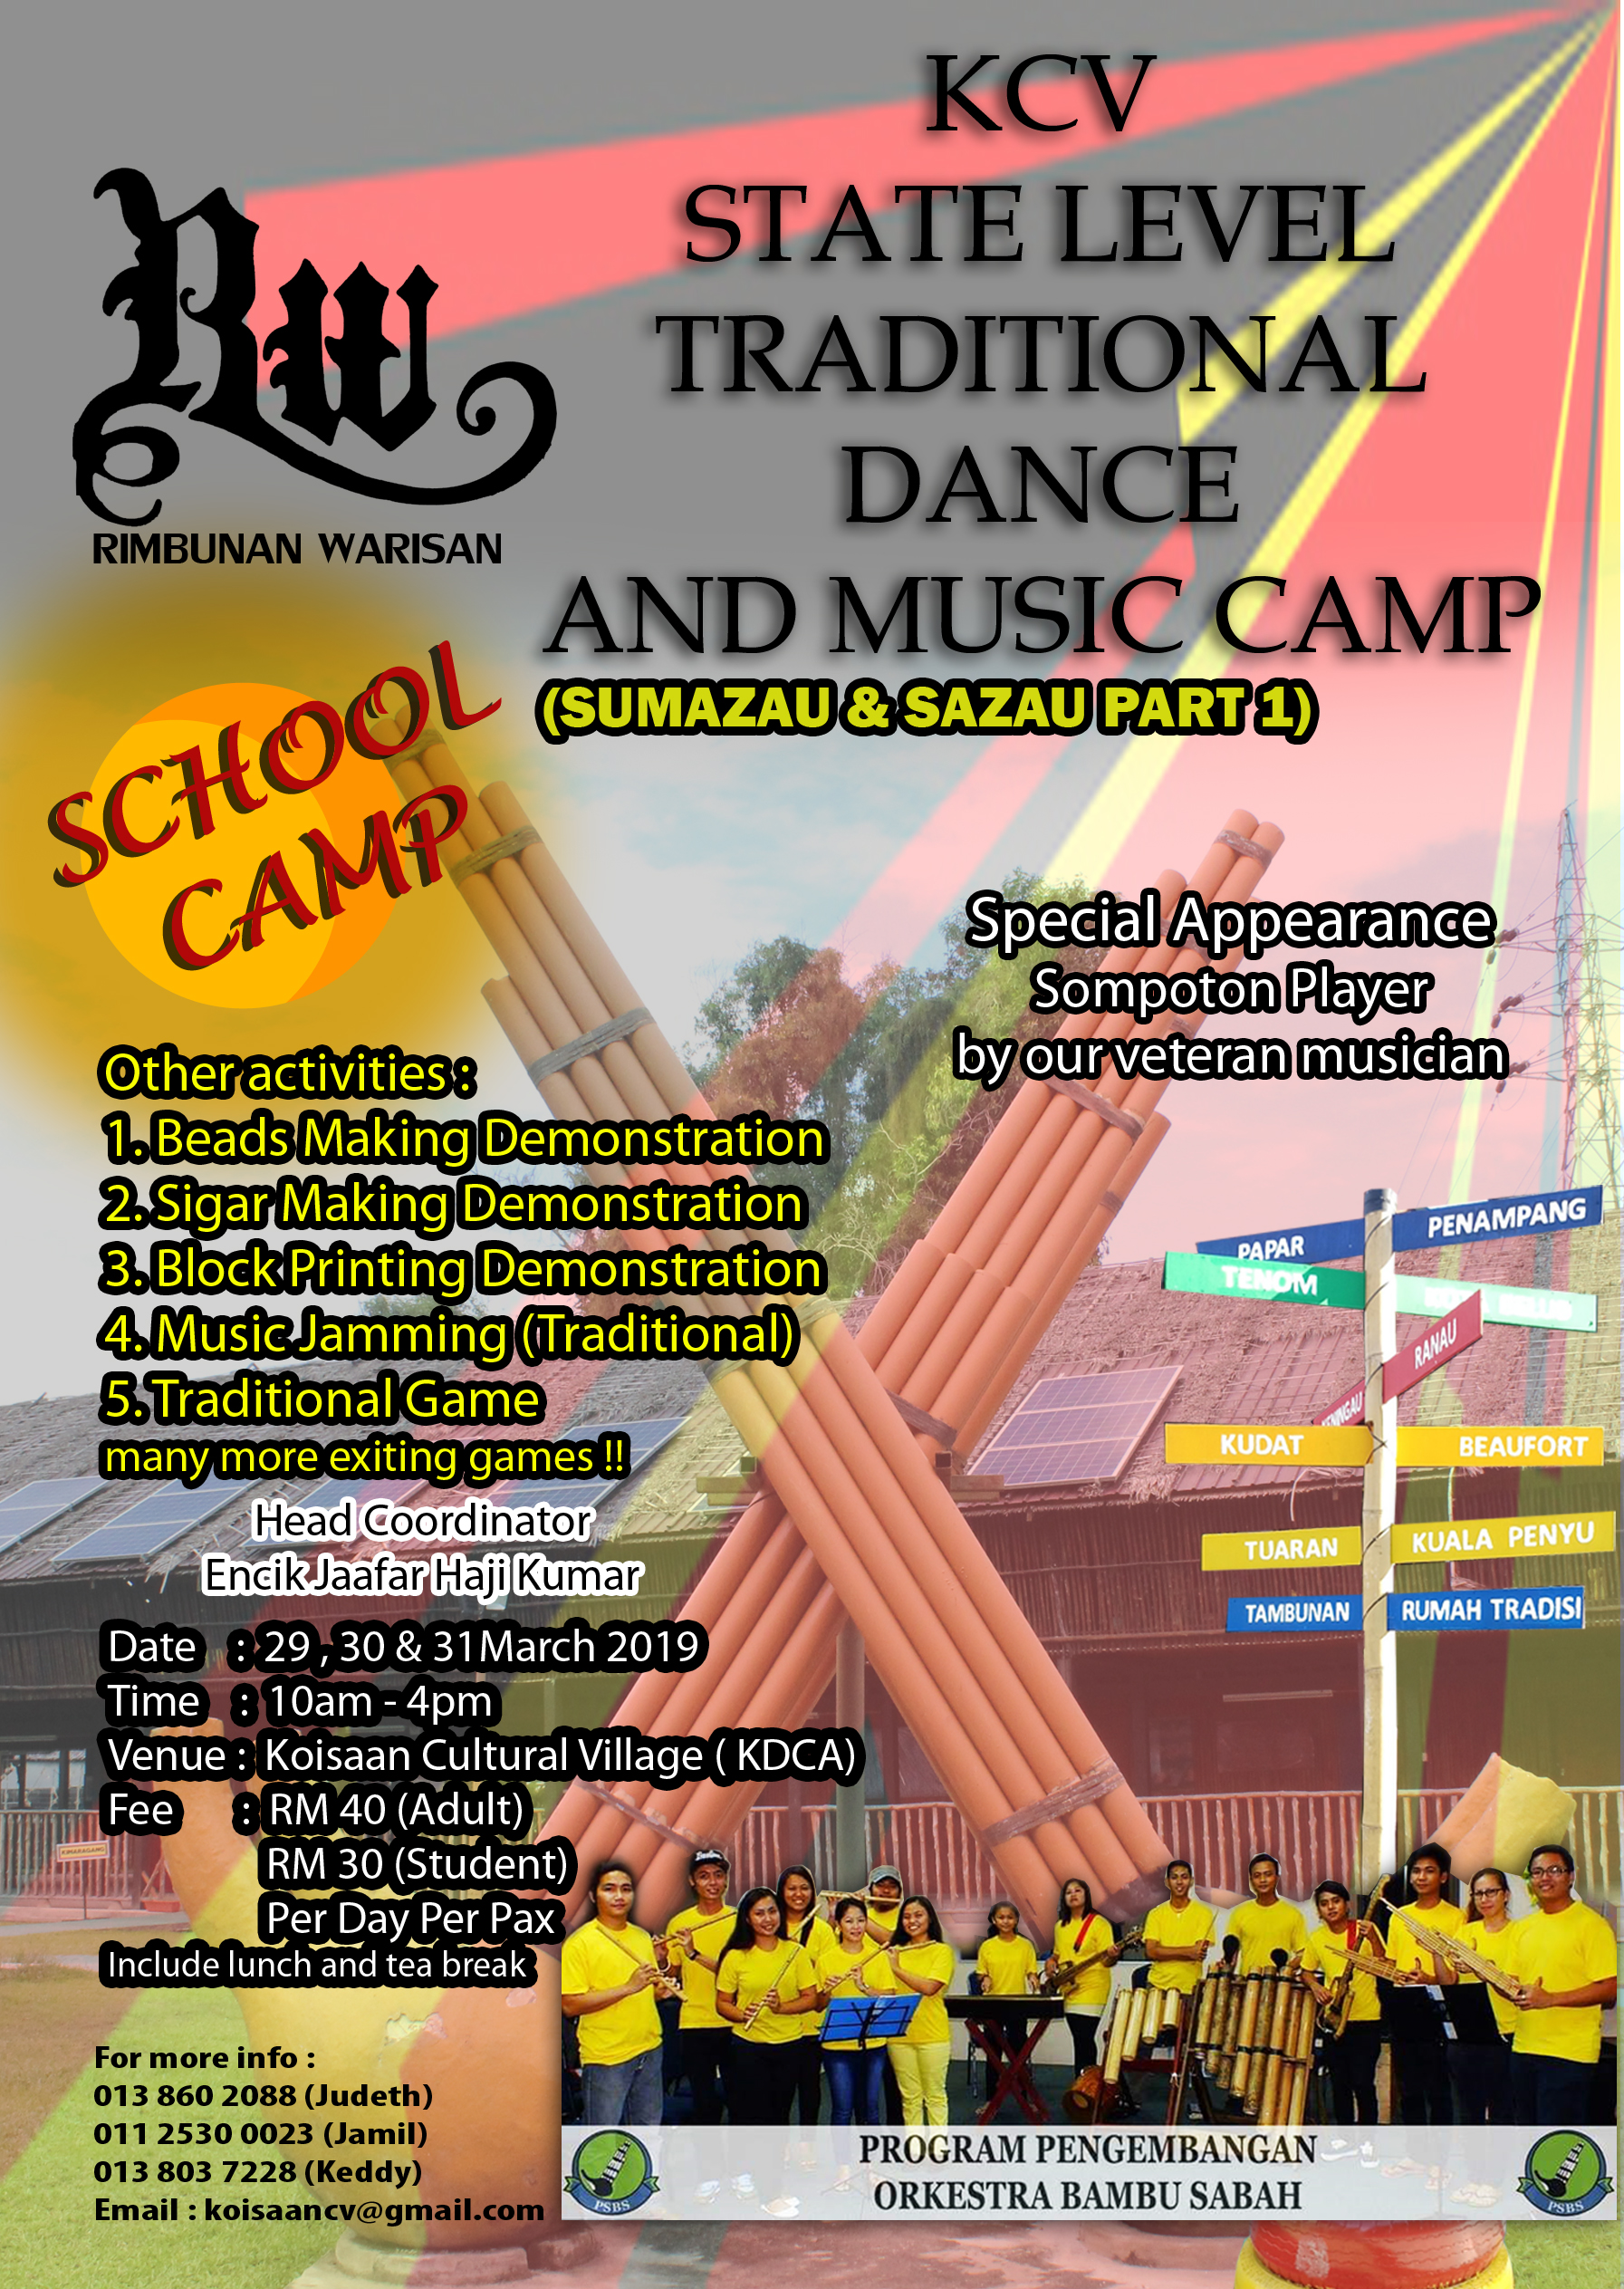 kcv music camp copy-1.jpg